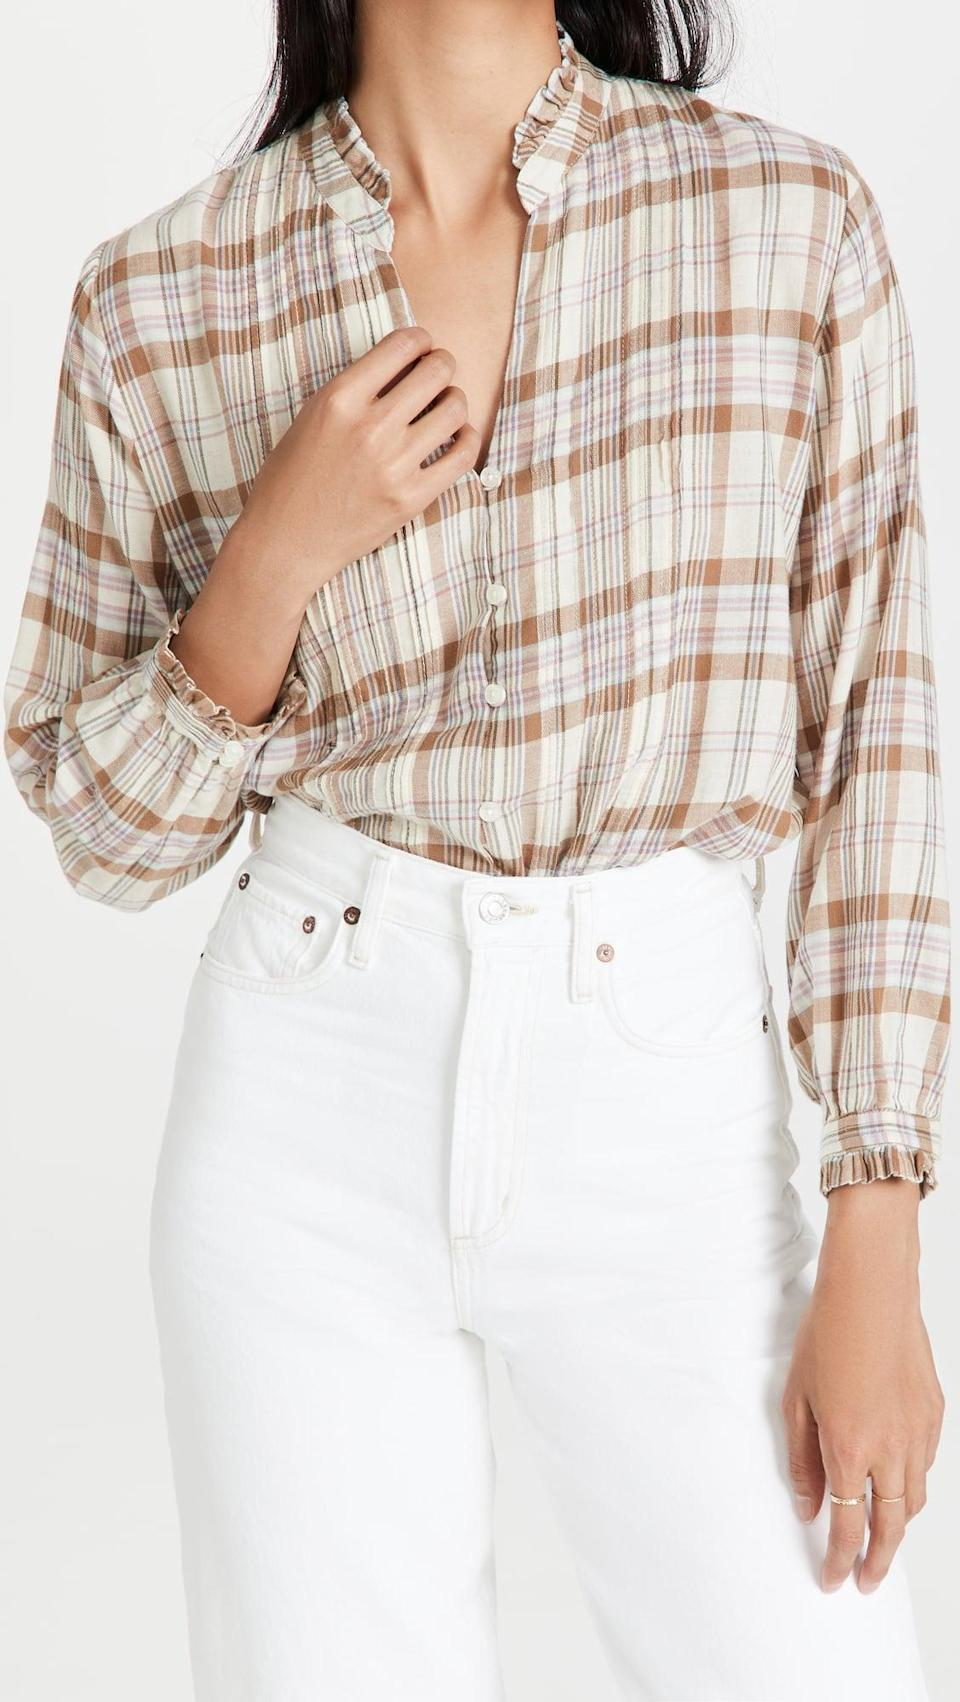 <p>This <span>Birds of Paradis Finley Pintuck Blouse</span> ($238) looks great with all kinds of denim, or even a black miniskirt. Plus, the ruffle details are so pretty.</p>